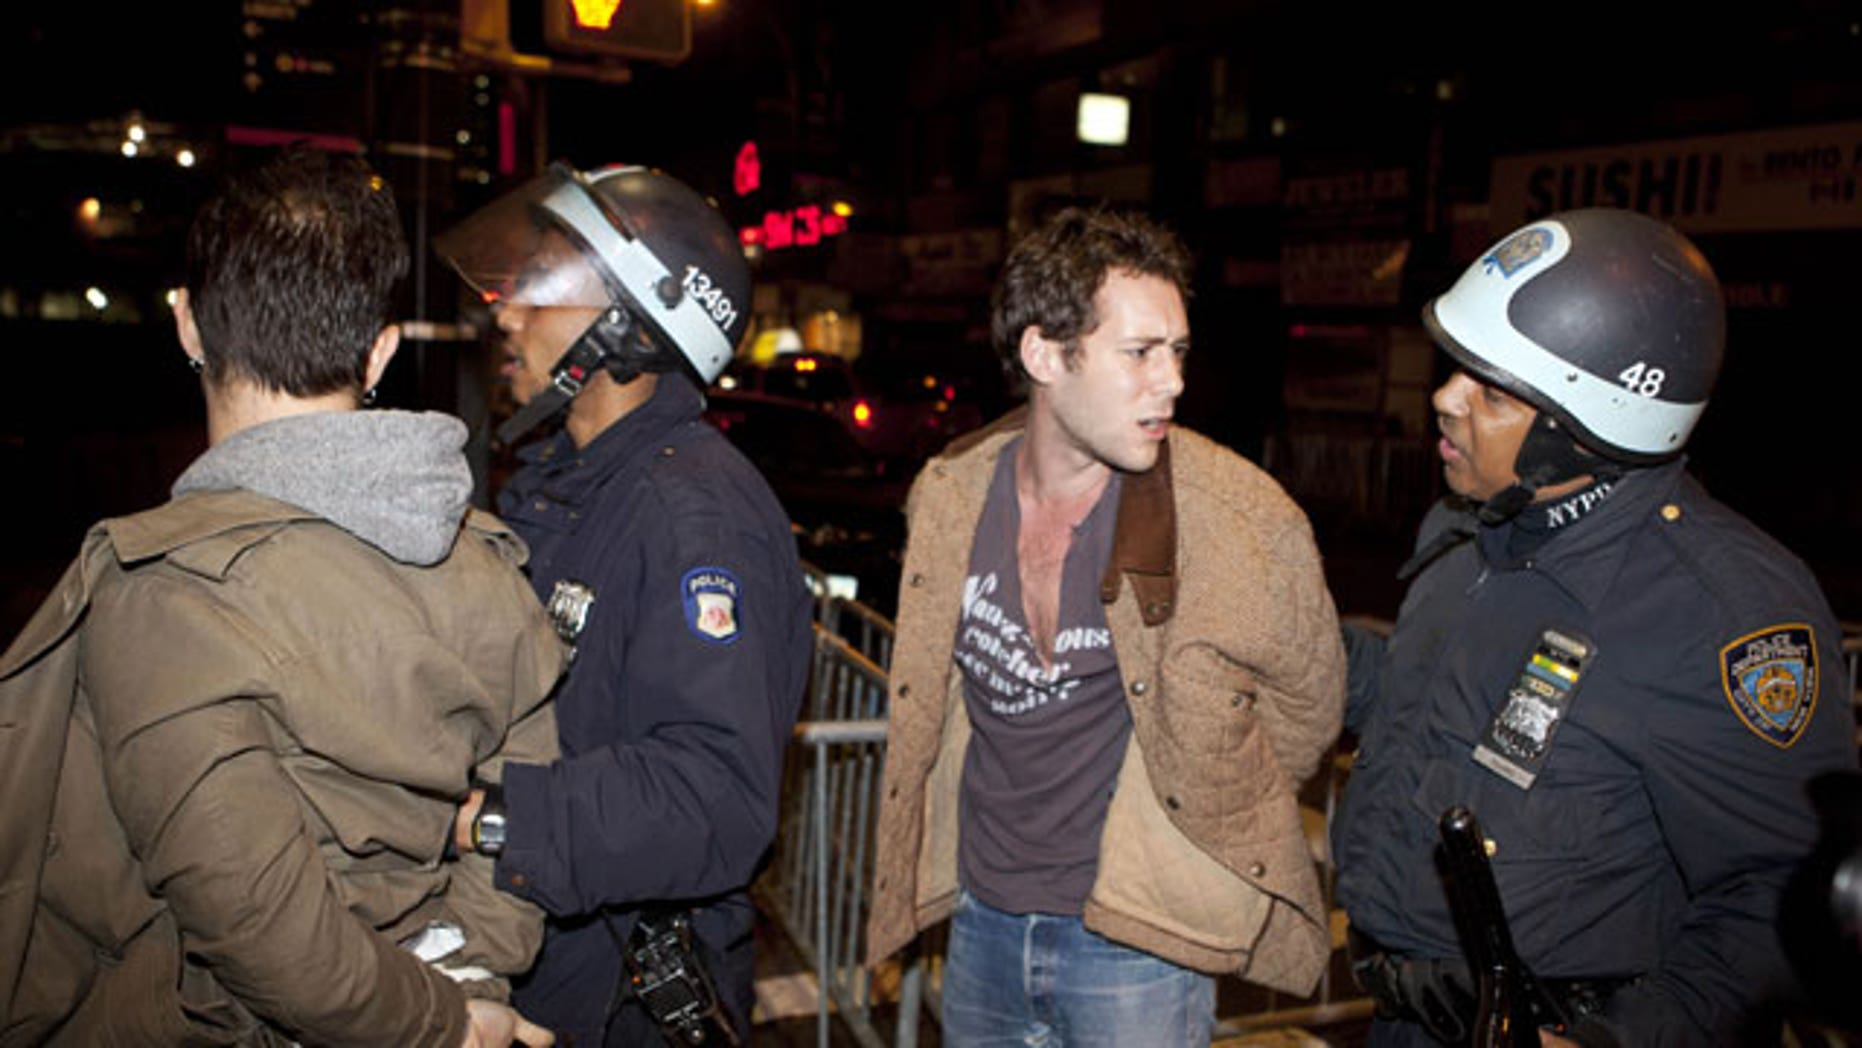 Nov. 15, 2011: Occupy Wall Street protesters are detained by police officers after being ordered to leave Zuccotti Park, their longtime encampment in New York.